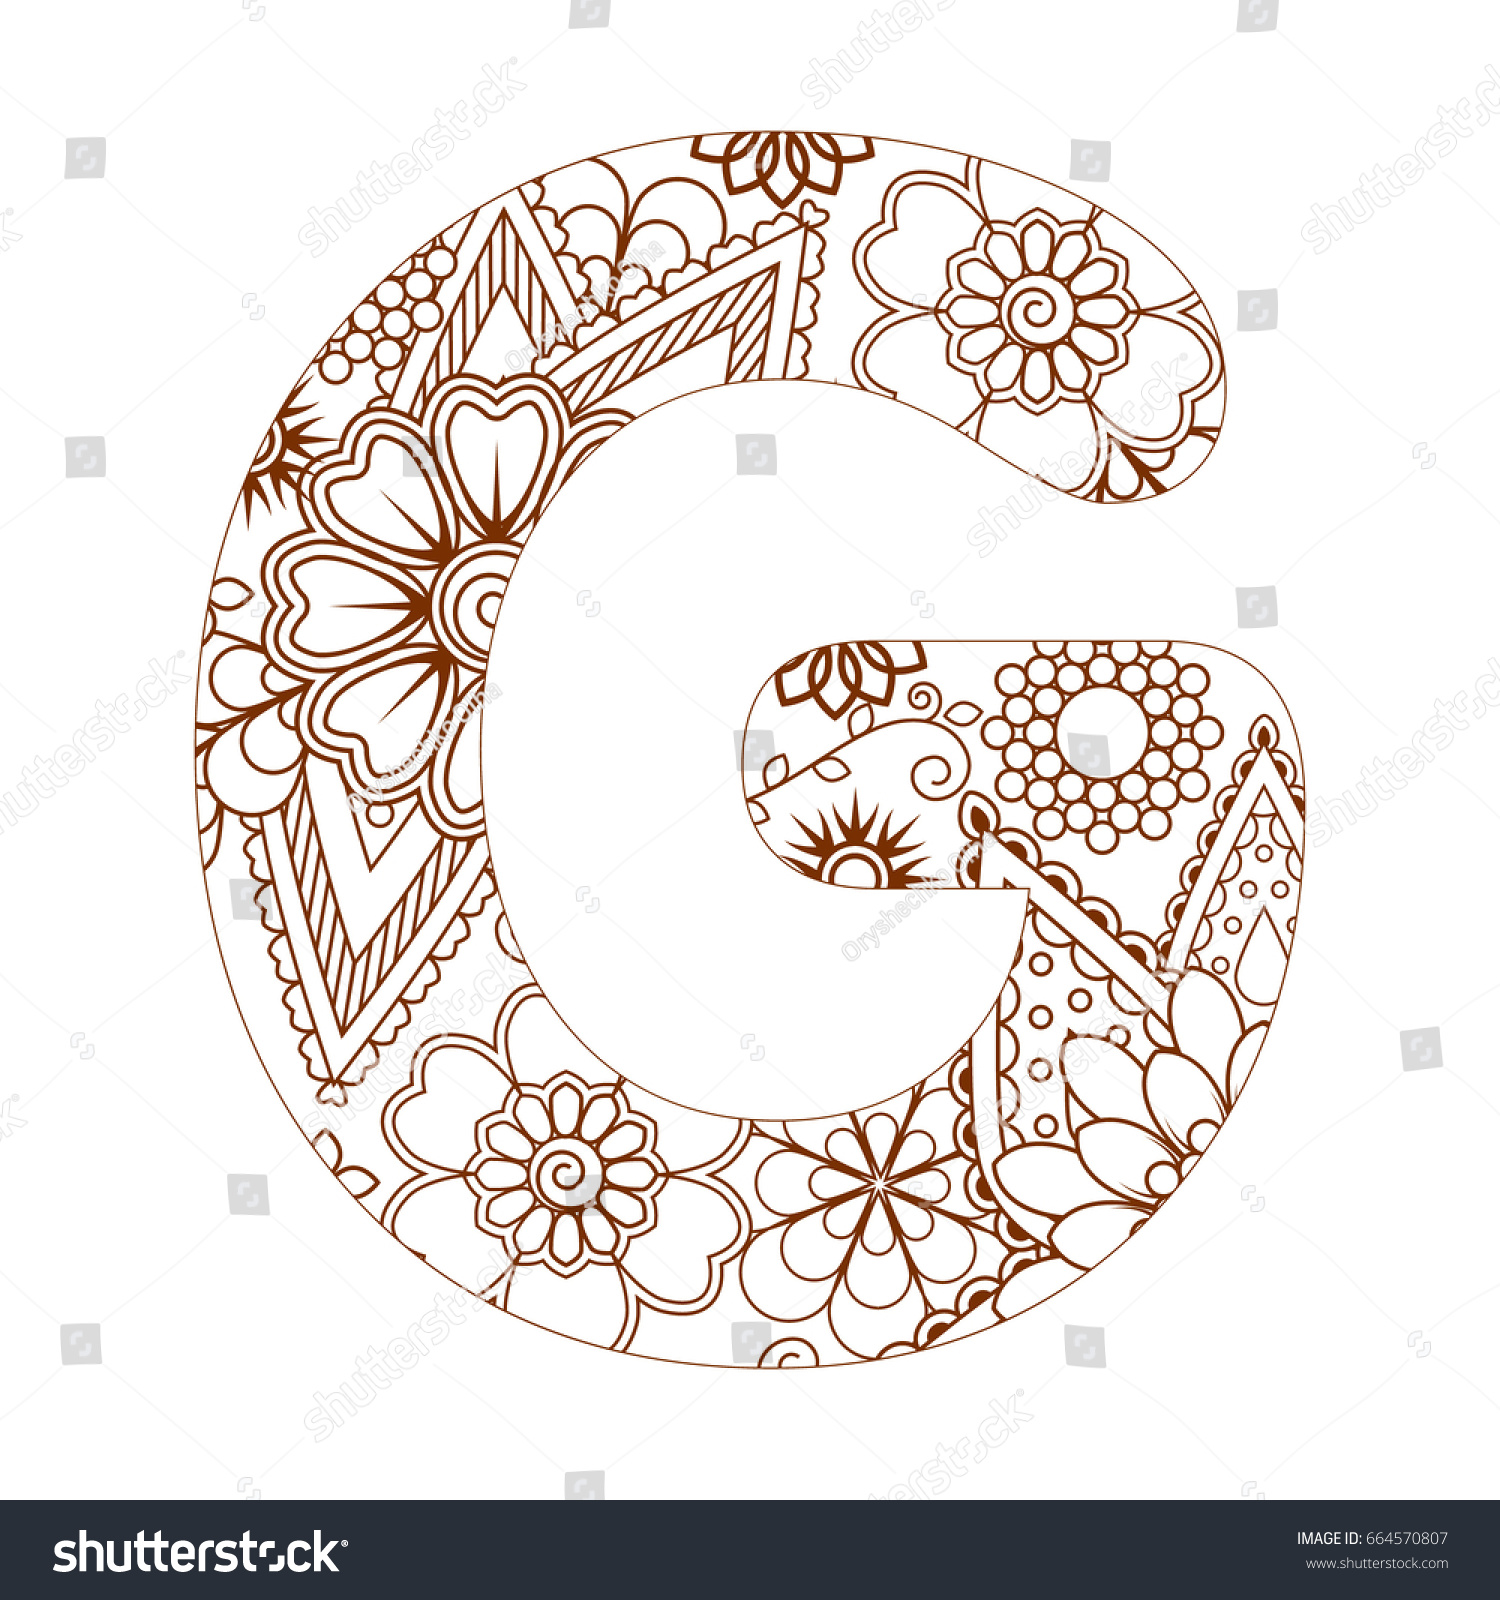 Coloring pages for letter g - Adult Coloring Page With Letter G Of The Alphabet Ornamental Font